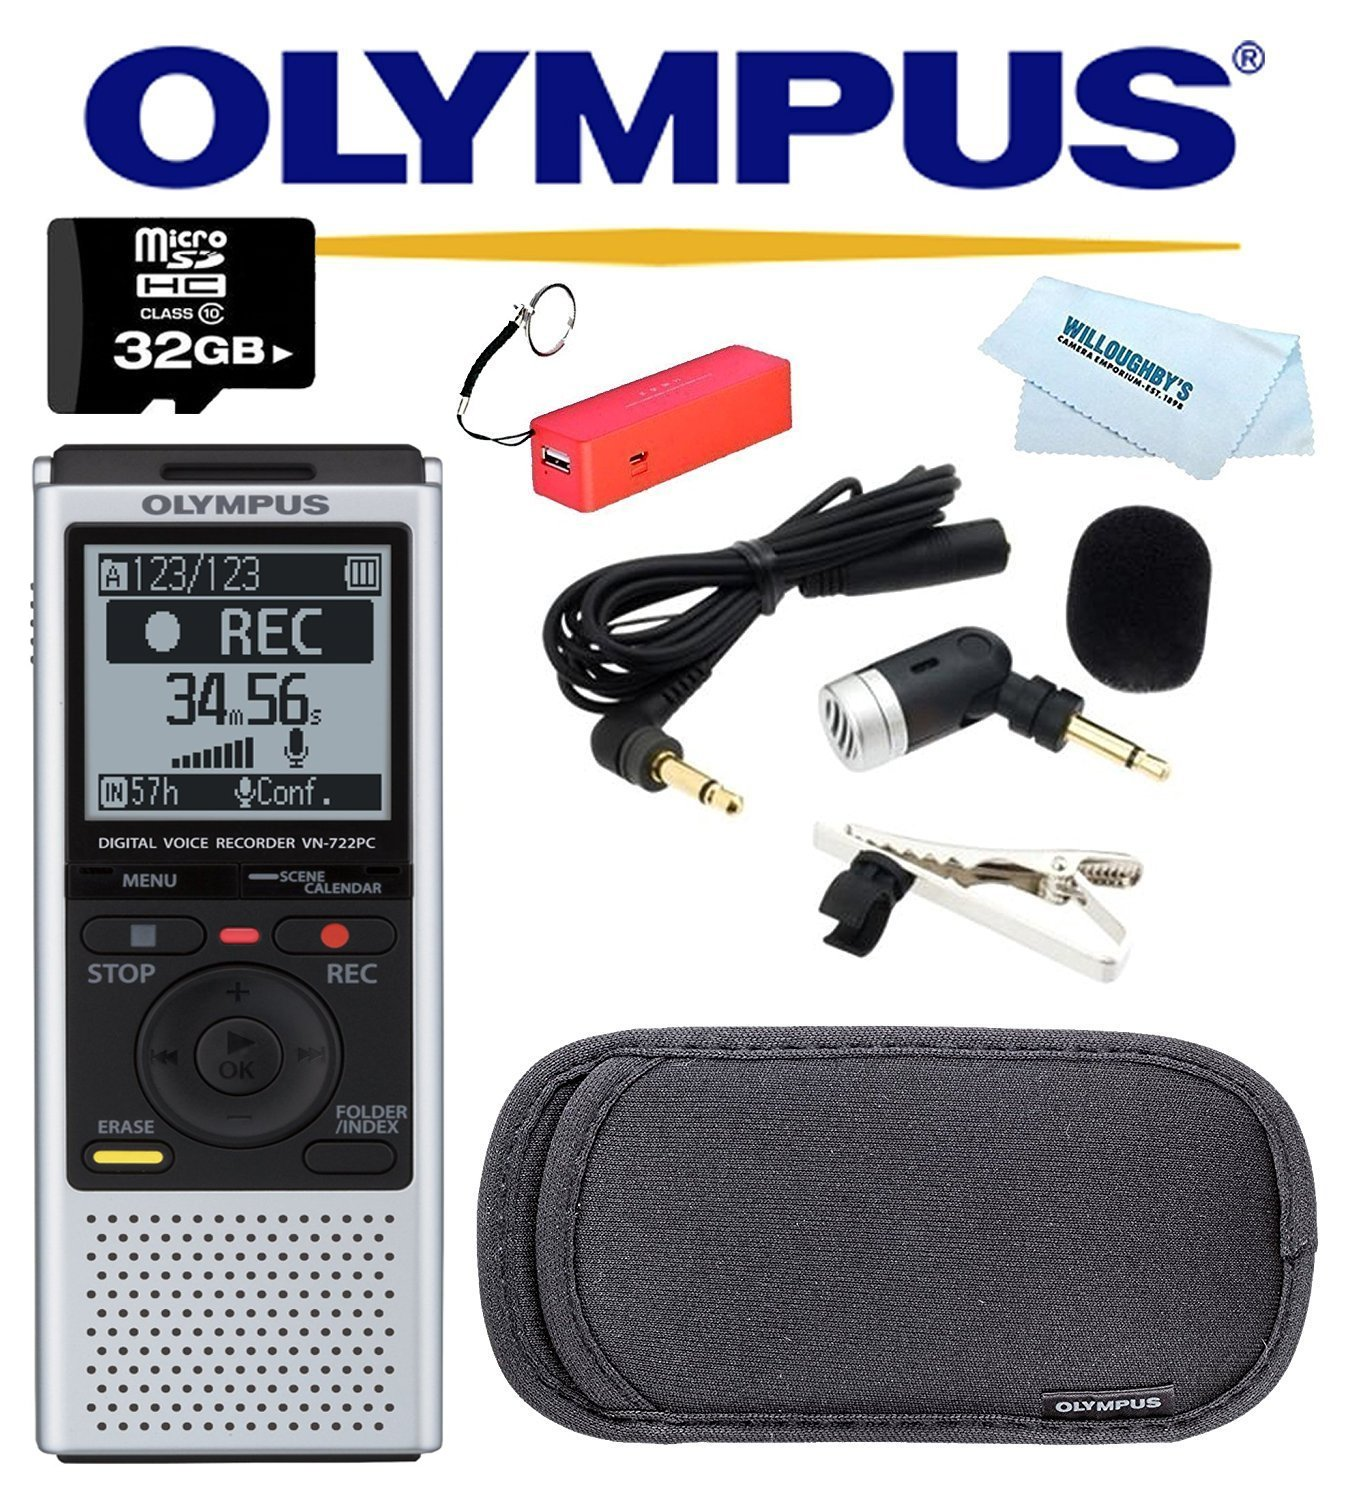 Olympus VN-722PC Voice Recorders, 4 GB Built-In-Memory + 32GB MicroSD + Olympus ME-52W Noise Canceling Microphone + Olympus CS-125 Soft Carrying Case + Power Bank + Bluetooth Speaker + Accessory Kit